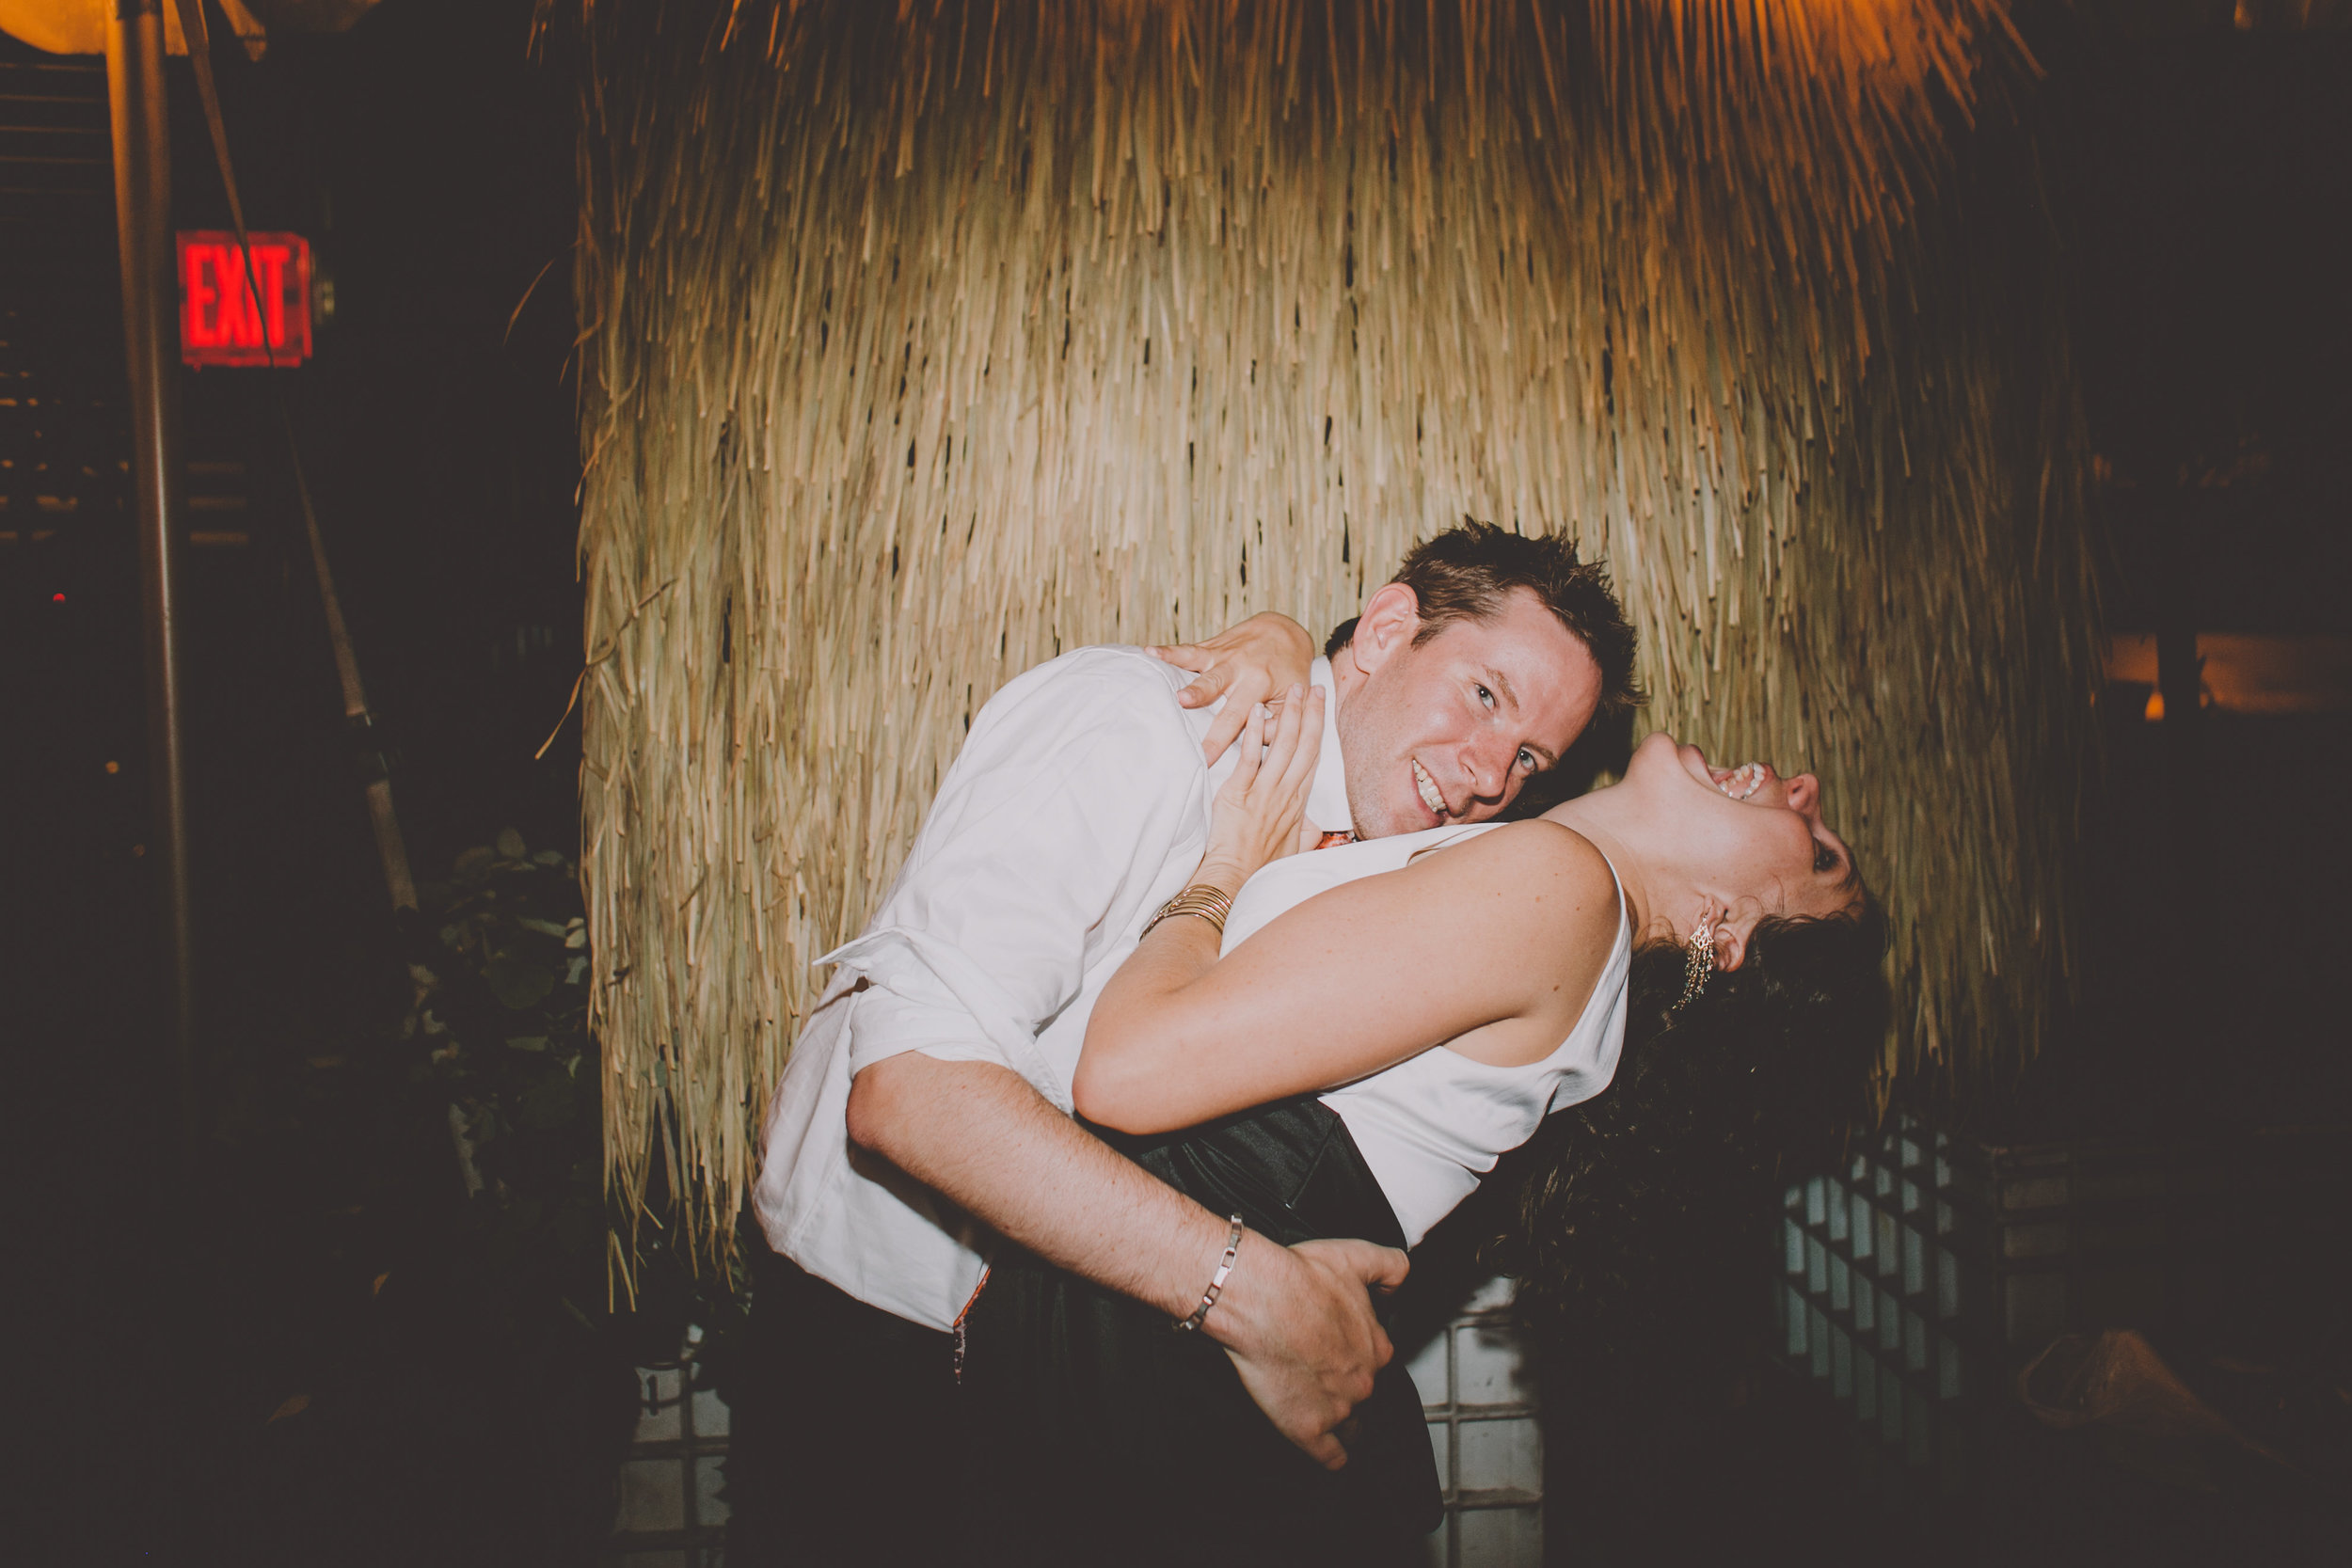 Robertas_Bushwick_Wedding_Tiki_Photography358.JPG